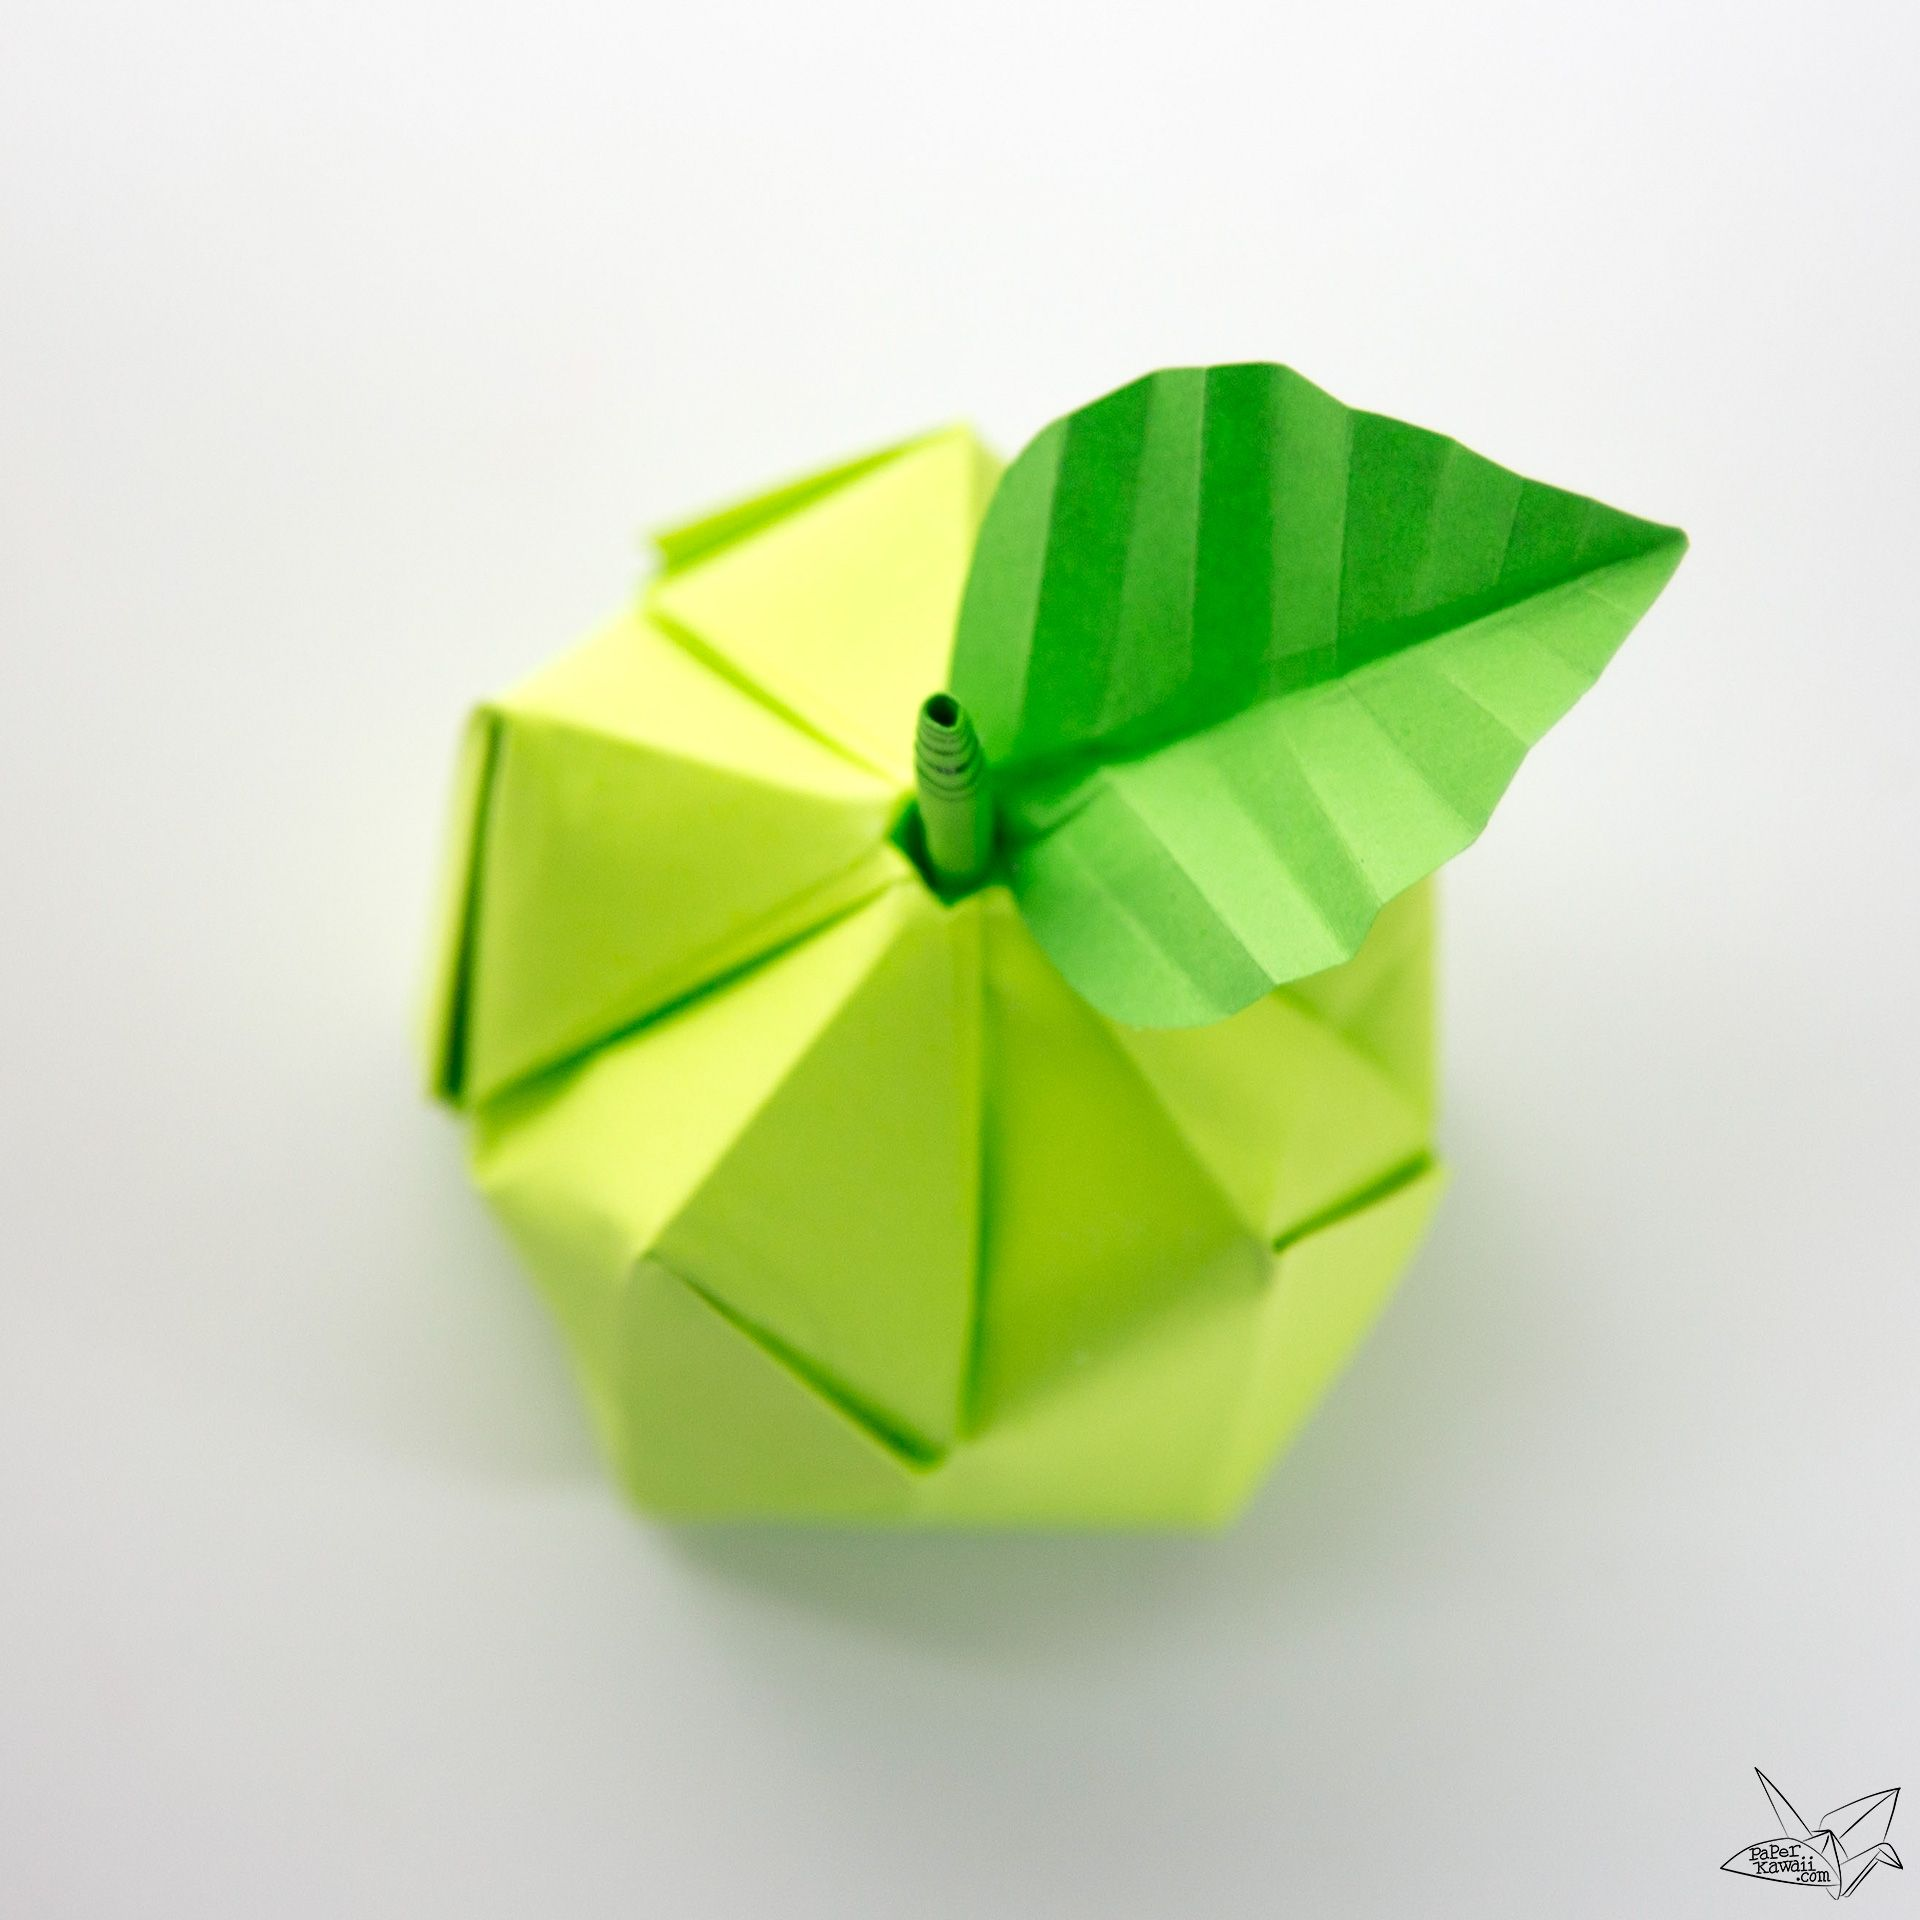 The equivalent mechanism of an origami waterbomb base | Download ... | 1920x1920